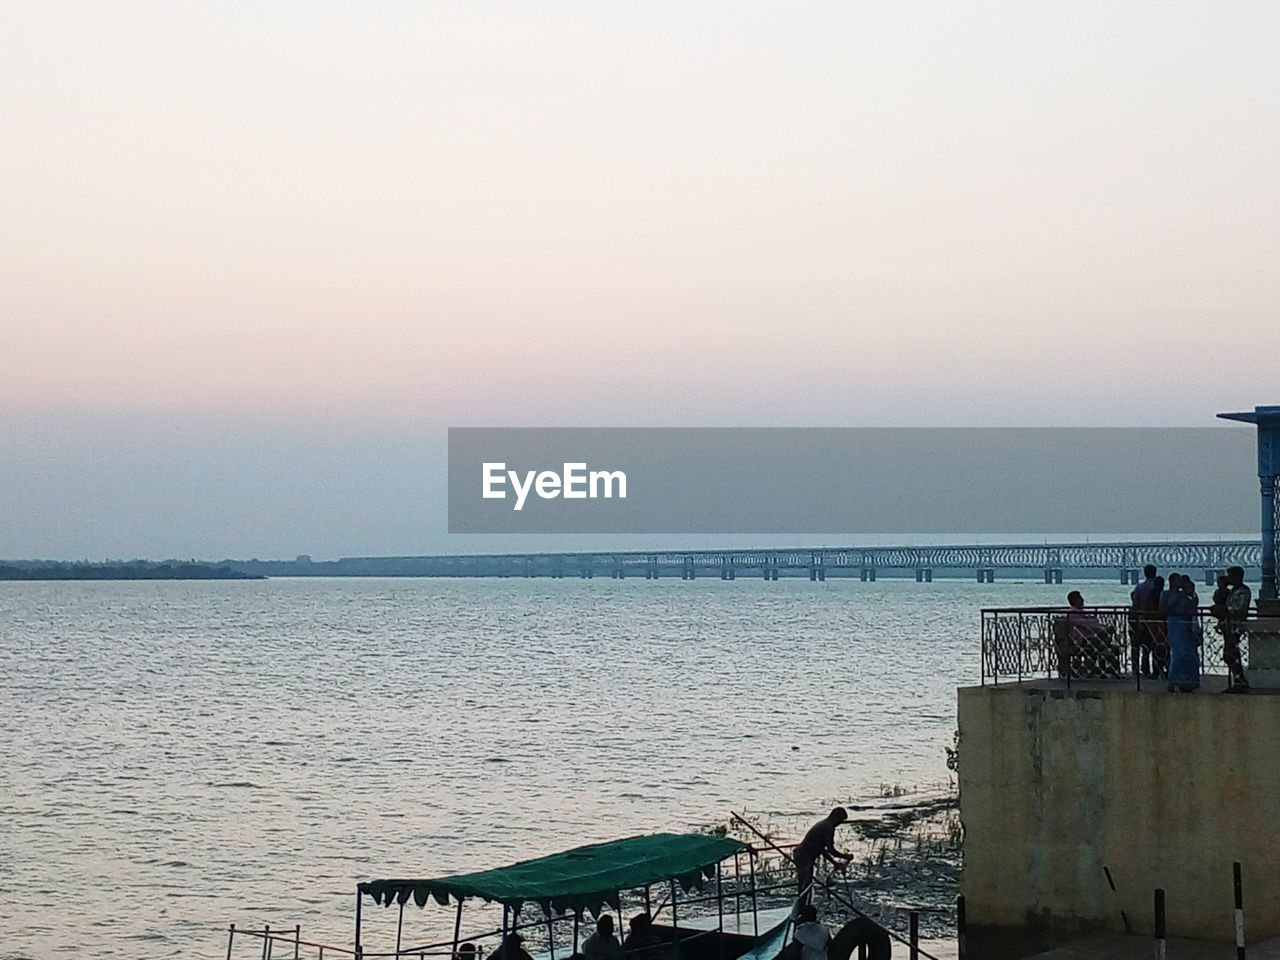 sea, water, horizon over water, nature, scenics, beauty in nature, sky, sunset, tranquility, railing, outdoors, beach, tranquil scene, clear sky, built structure, day, no people, architecture